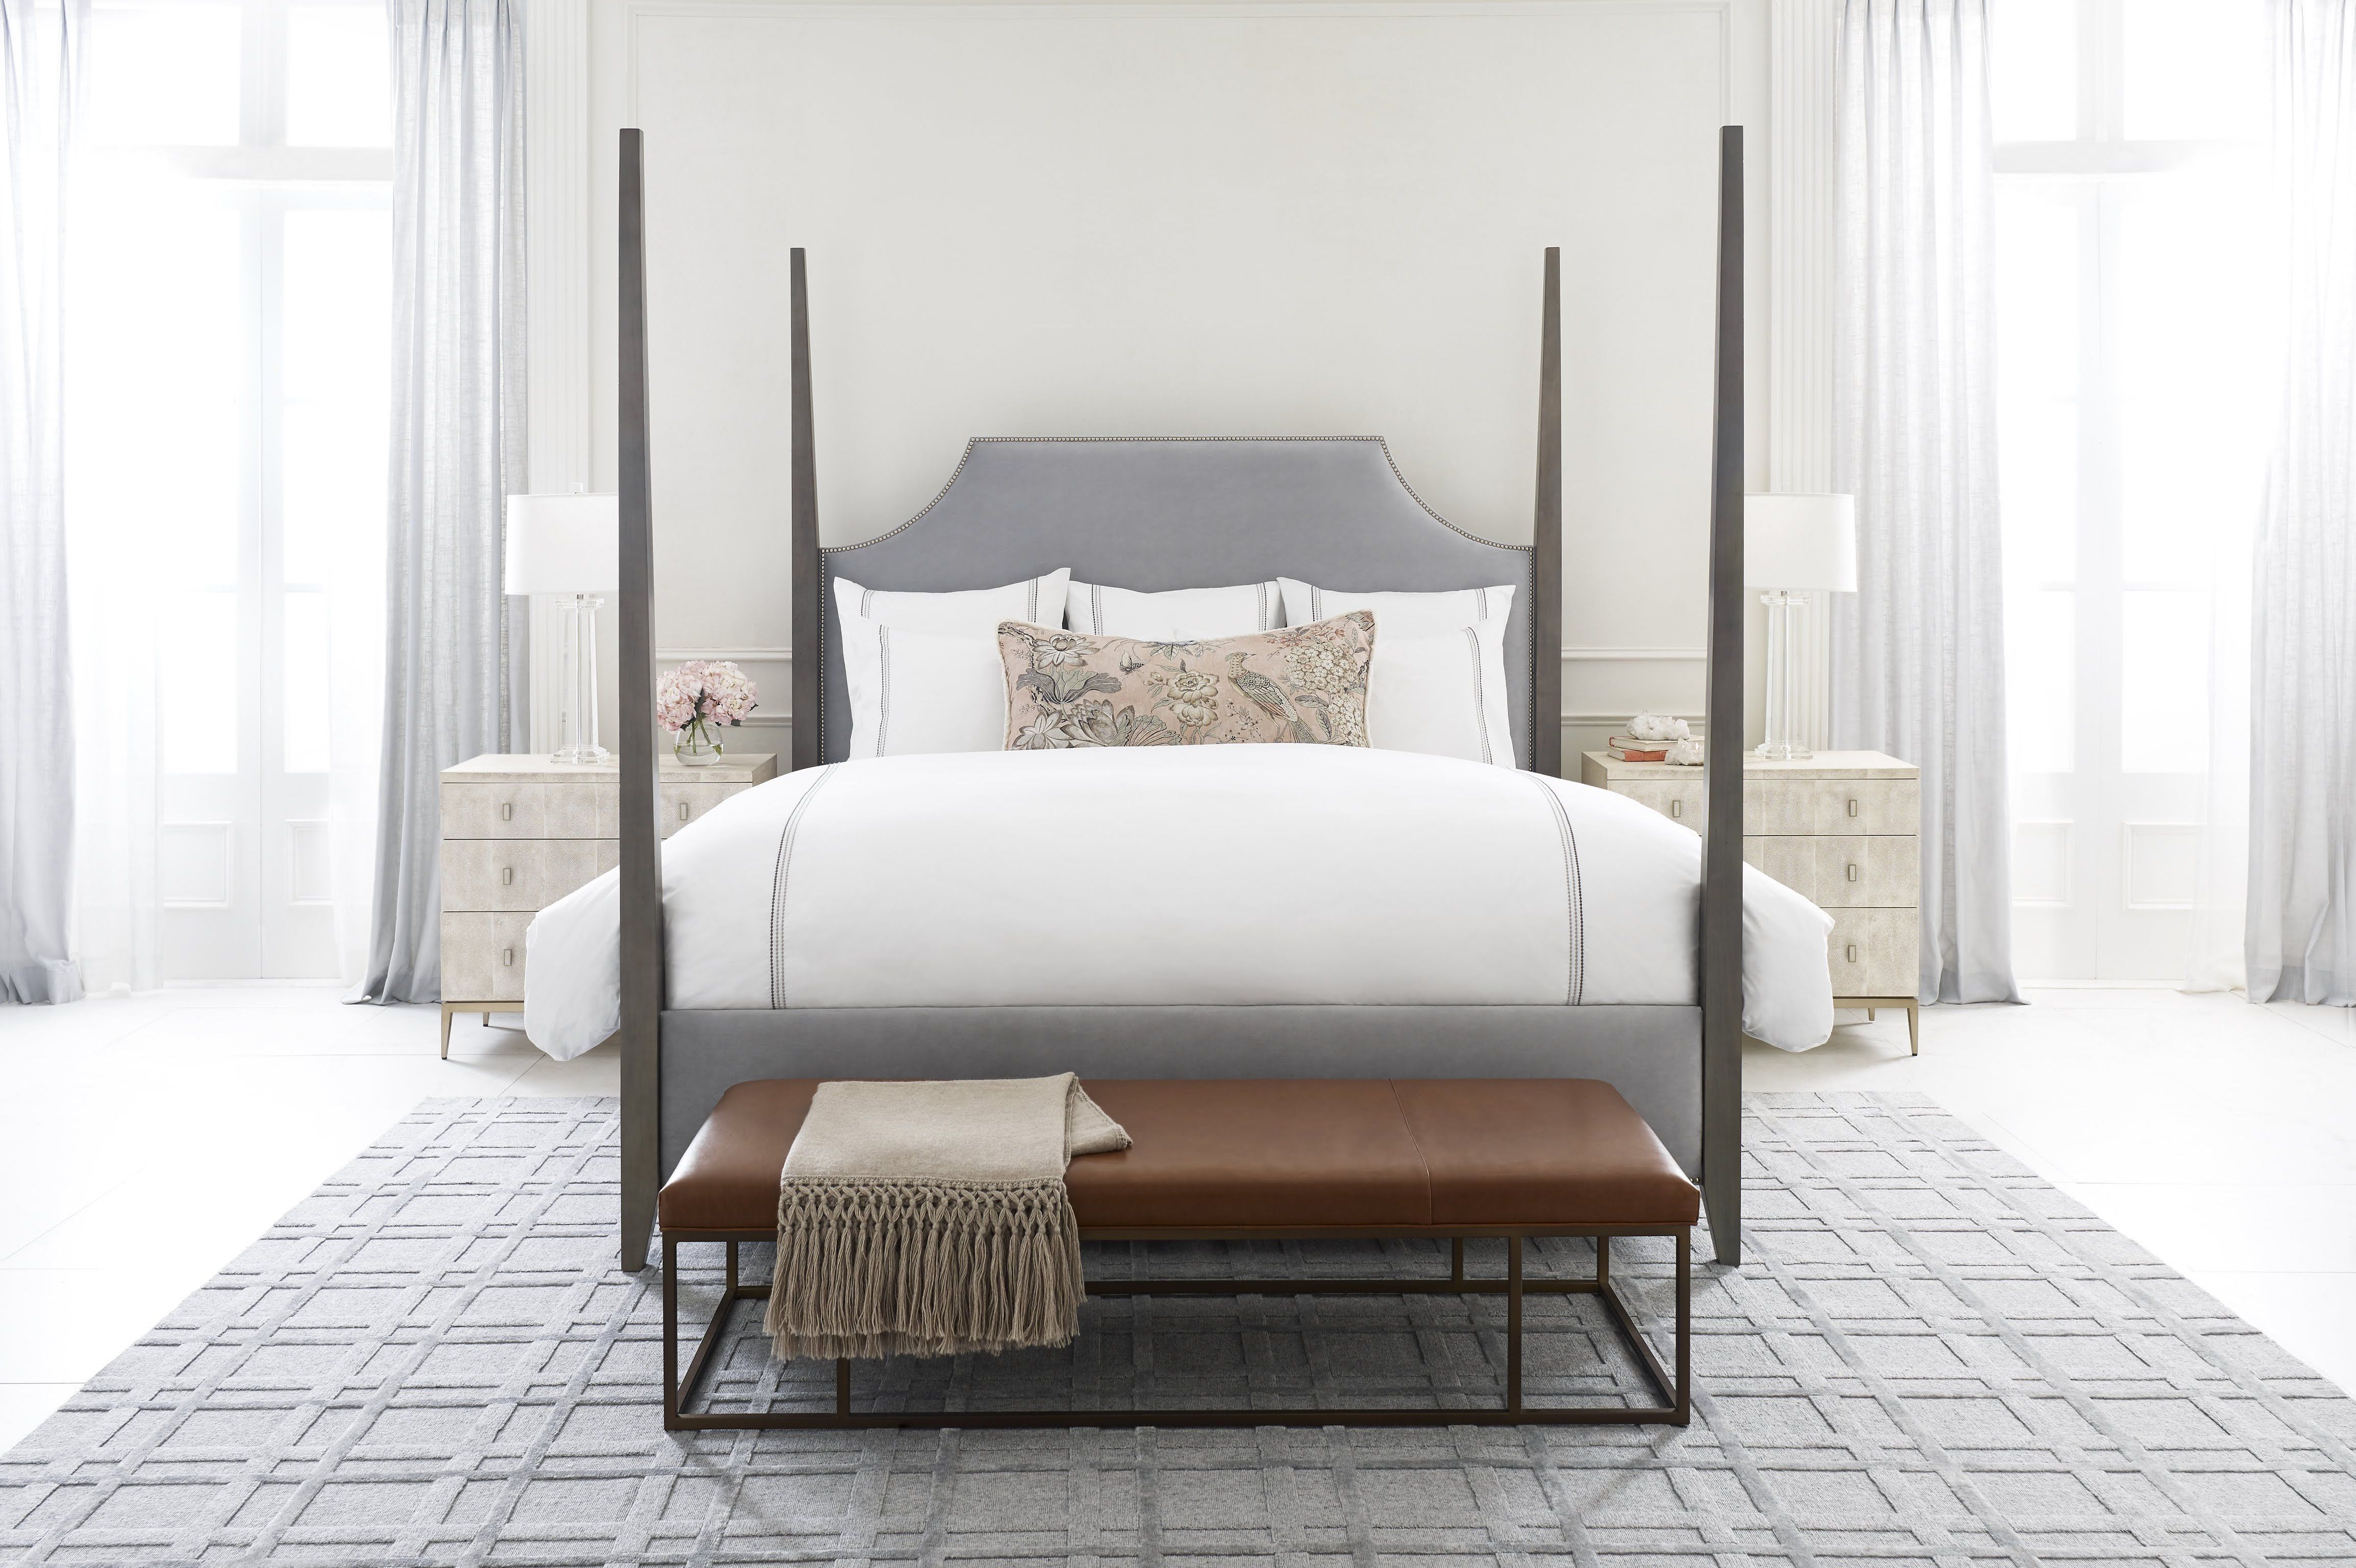 Mg Bw Create A Grand Setting In The Bedroom With A New Traditional Style Upholstered Bed Classic Four Poster Bed Frame With Tall Silver Bedding Bed King Beds